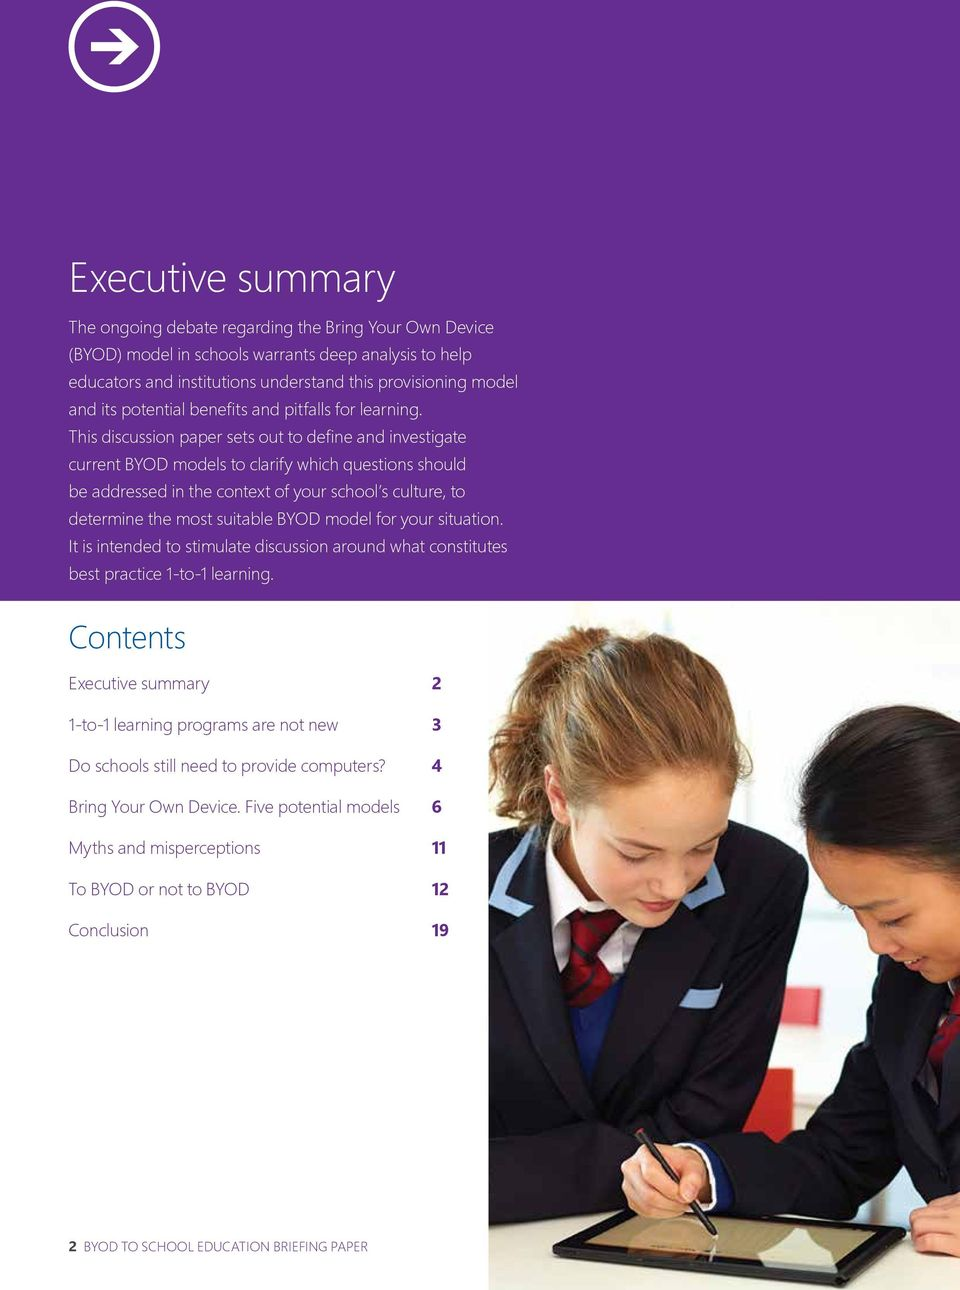 This discussion paper sets out to define and investigate current BYOD models to clarify which questions should be addressed in the context of your school s culture, to determine the most suitable